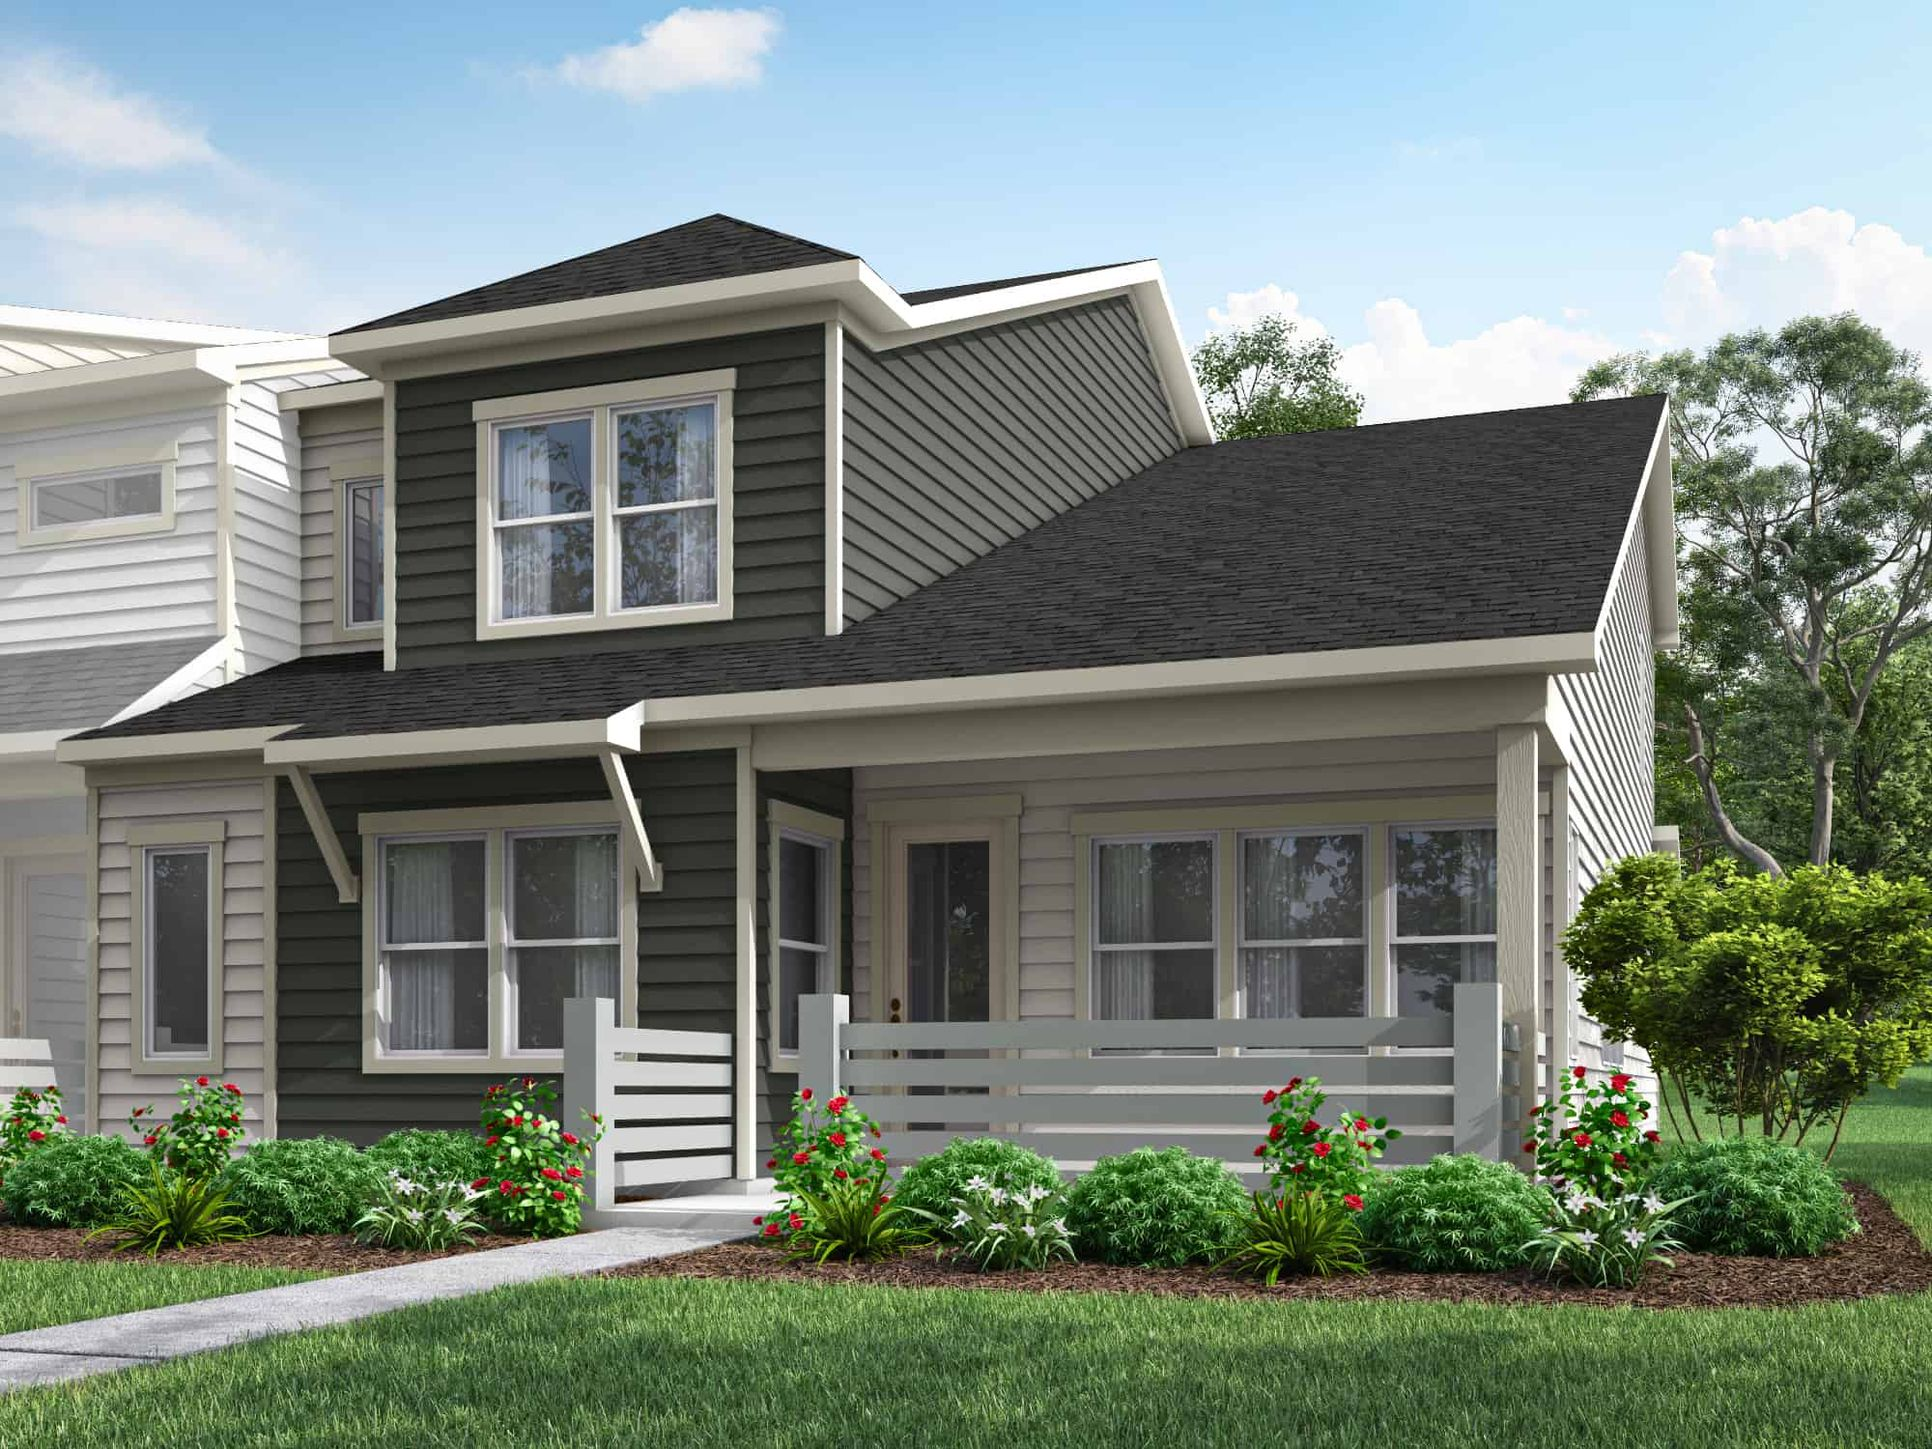 Pennant Square | Plan 3 - Exterior Style A